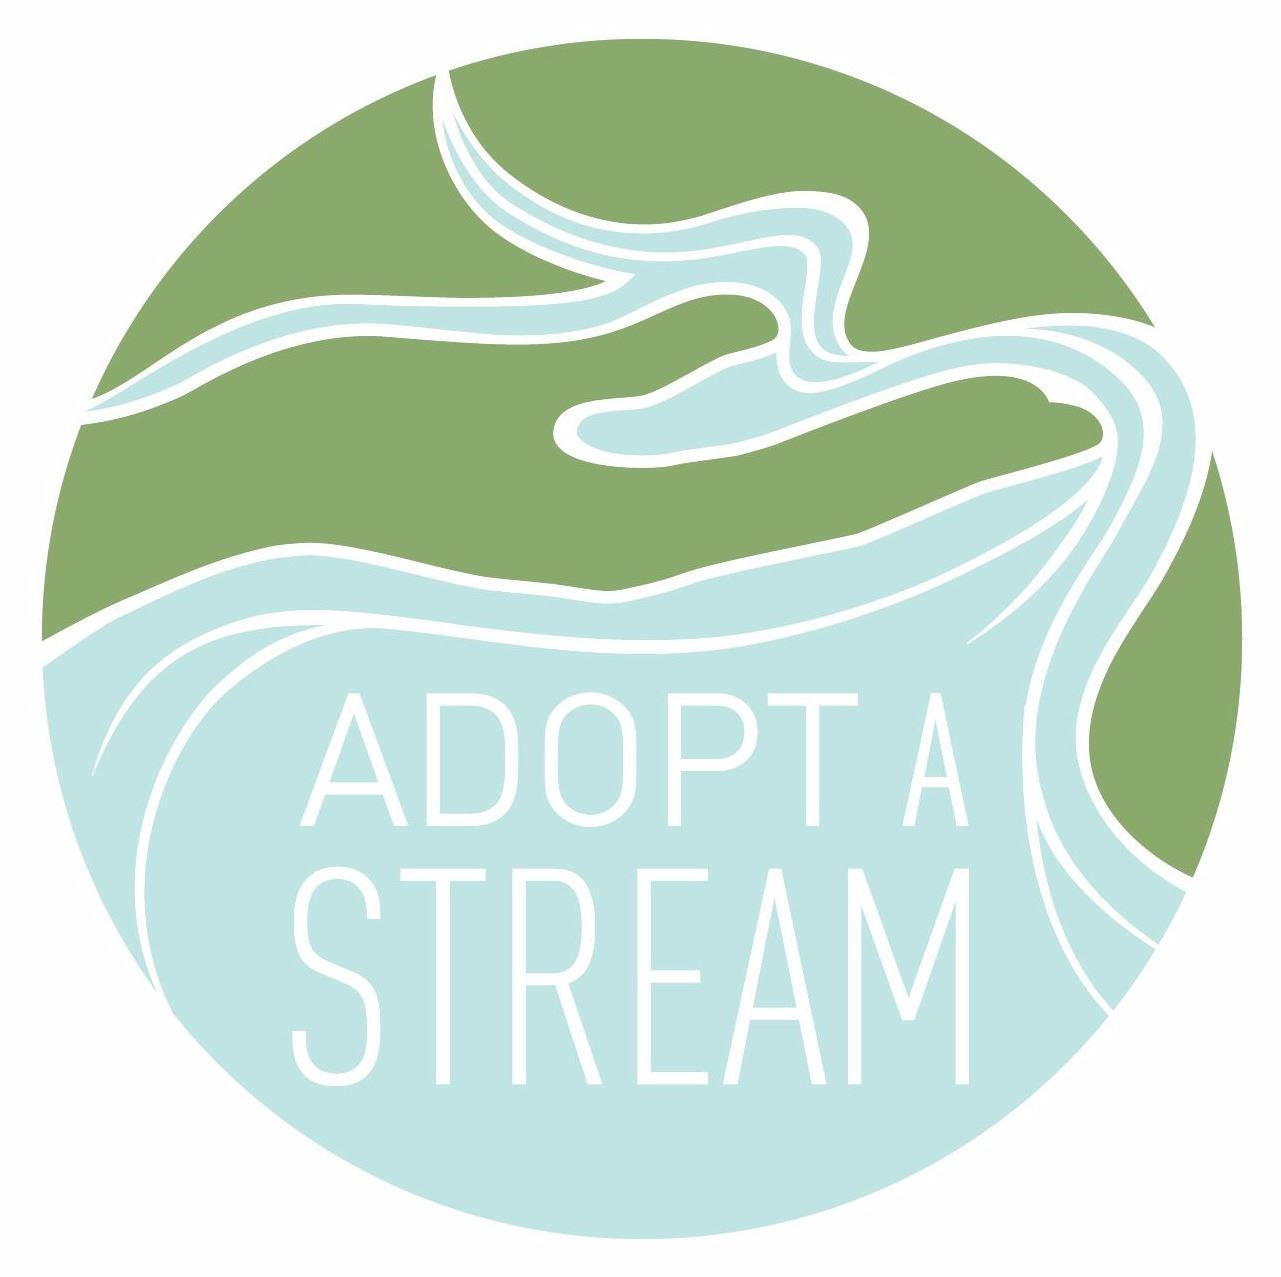 adopt a stream logo round with a blue river and green hand palm up